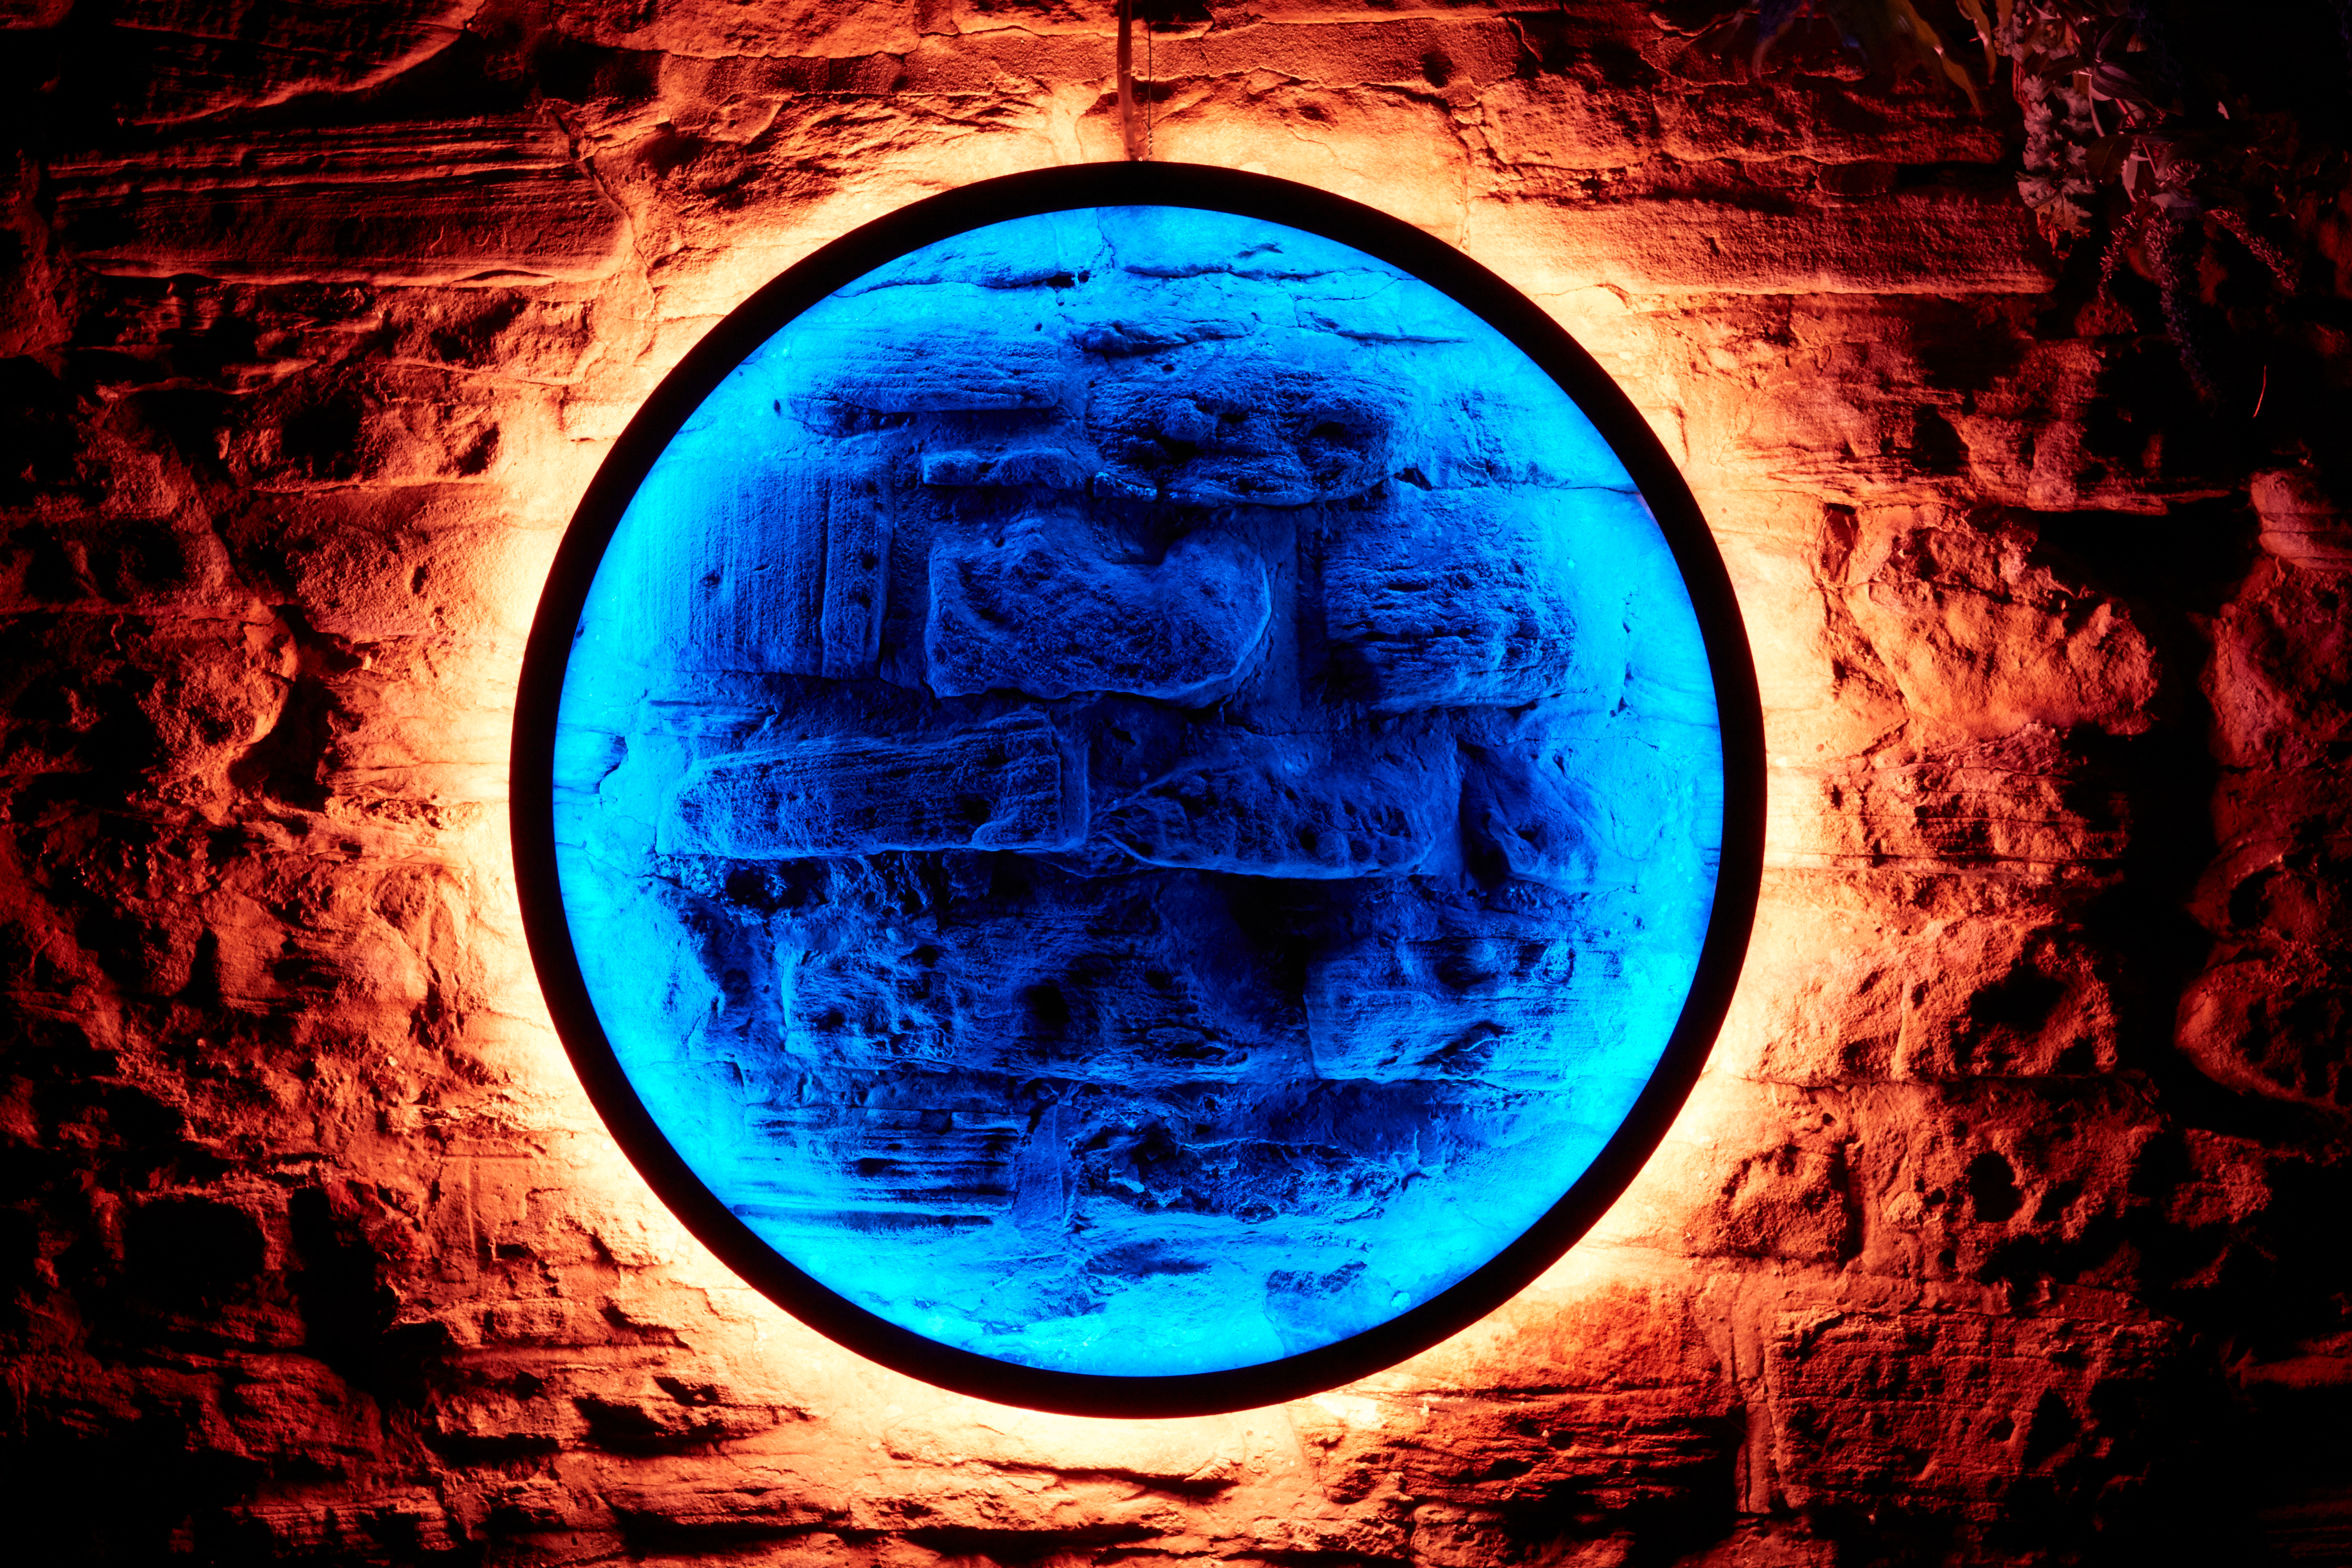 Harmonic Portal by Chris Plant, part of Lumiere Durham 2017, produced by Artichoke and commissioned by Durham County Council. Photo: Matthew Andrews